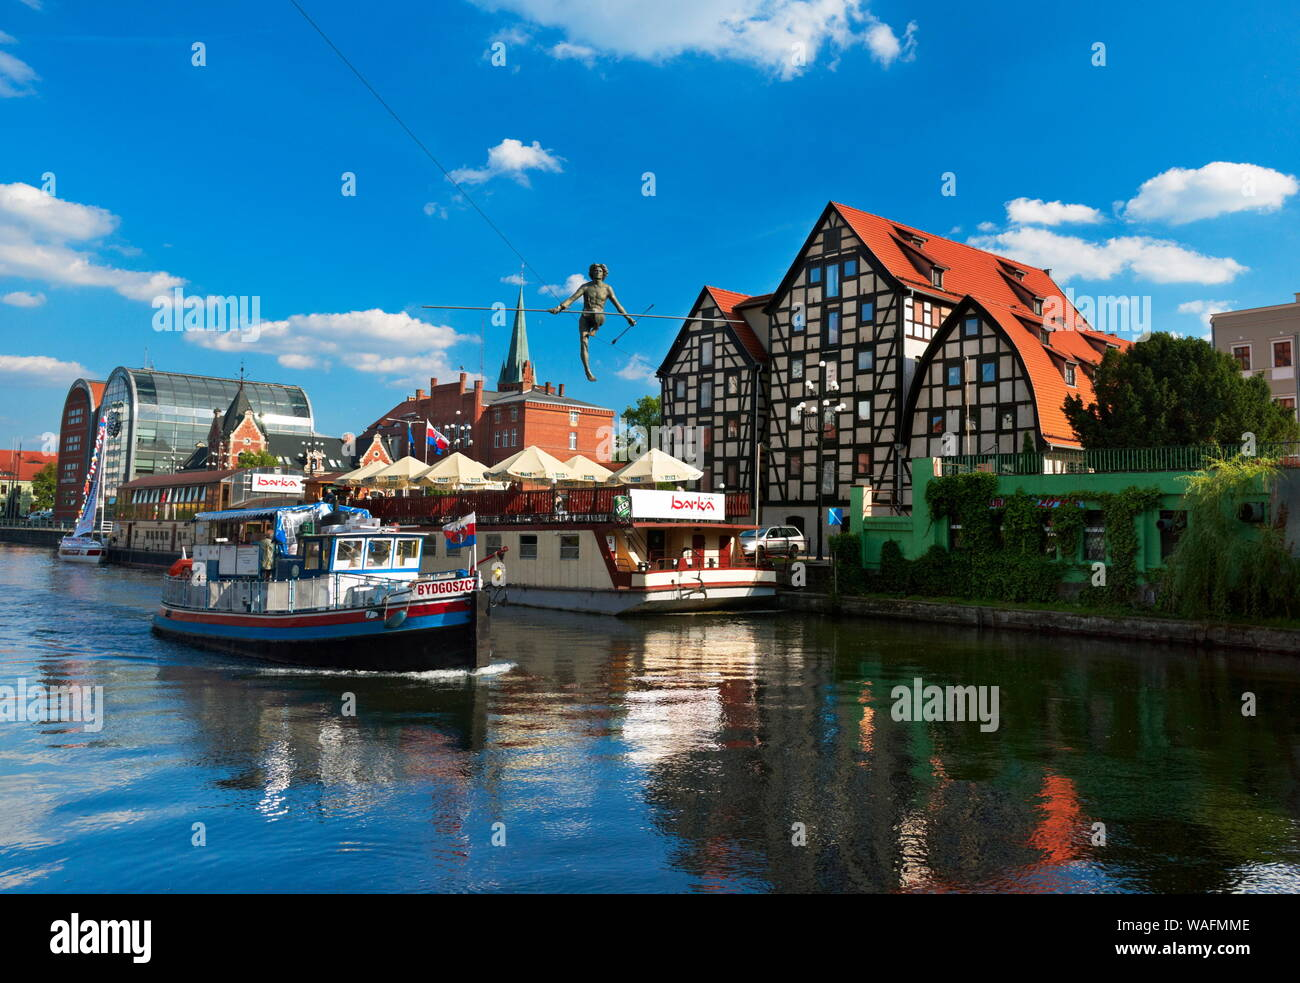 Bydgoszcz, Northern Poland, view from the Brda river cinty centre; relic granaries, 'Passing the River' figure hanging above the Brda river. Installed on May 1st 2004, the day Poland accessed the EU. Bydgoszcz in Kuyavia (Kujawy) region phot. Jan Wlodarczyk/FORUM Stock Photo